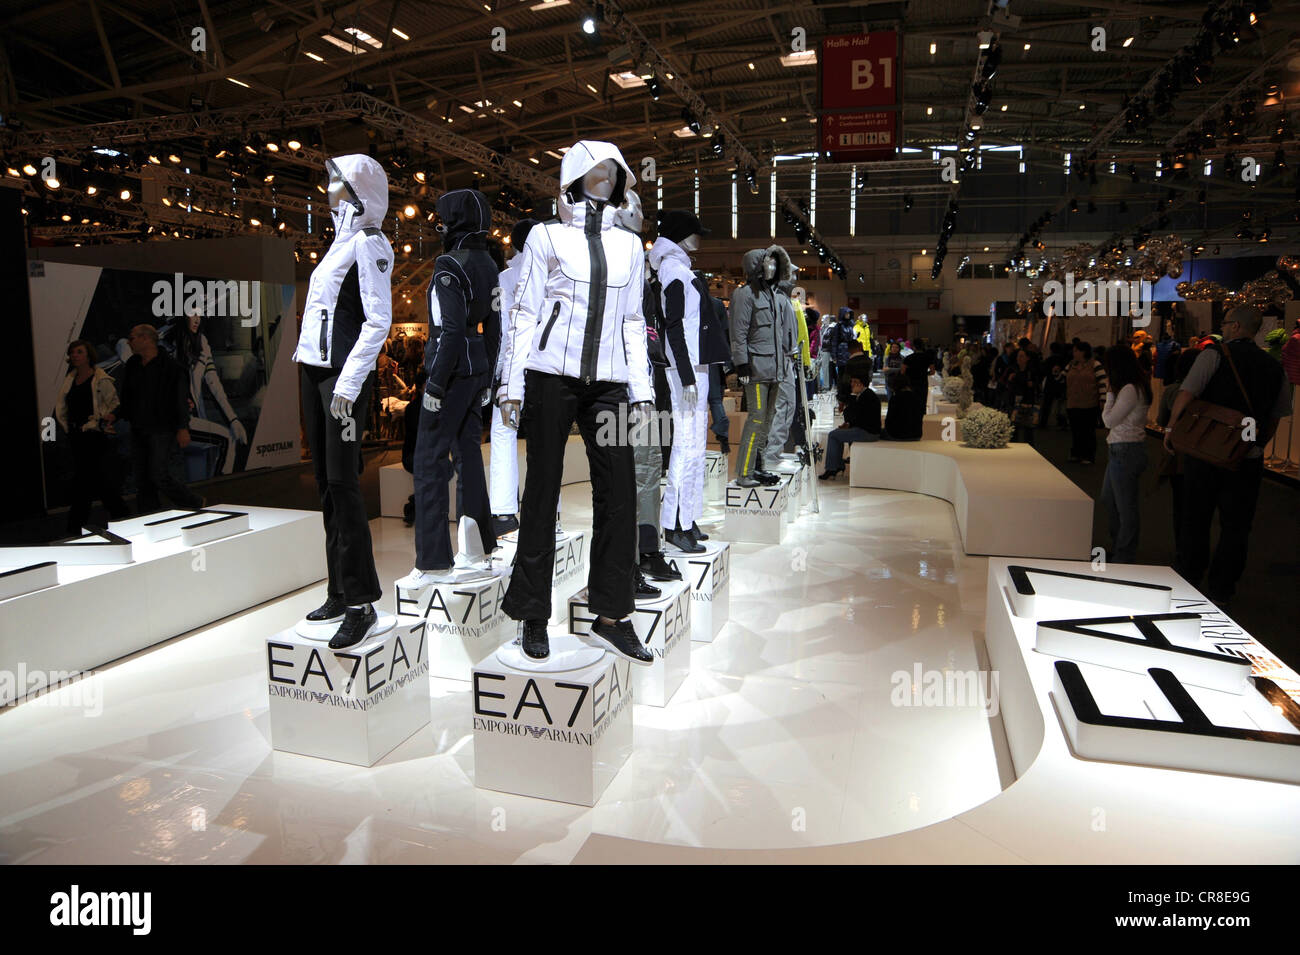 Exhibition booth of EA7 Emporio Armani, ISPO, International Sports Business Network, a trade fair for sports equipment - Stock Image